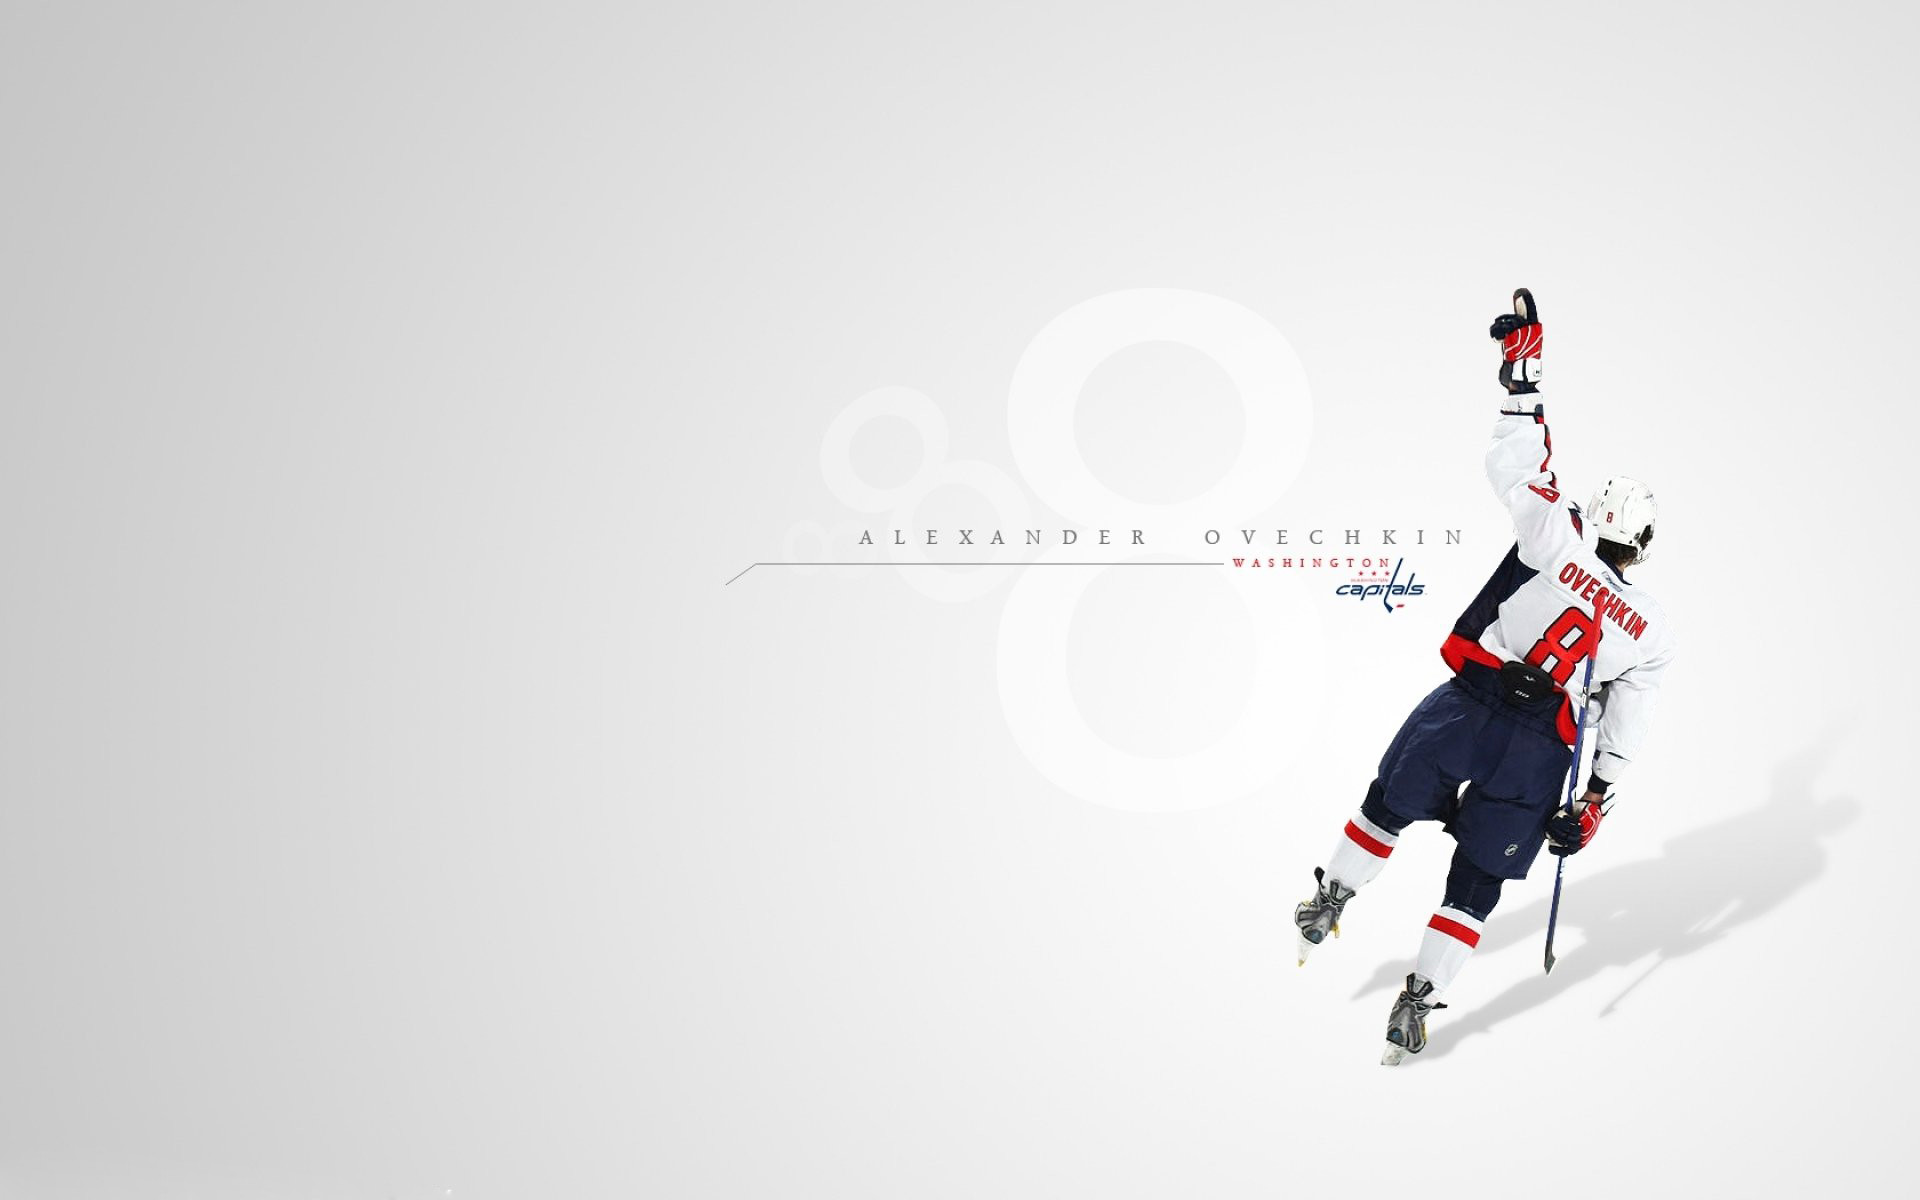 1920x1200 Wallpaper washington sport capitals hockey minimalistic sports.